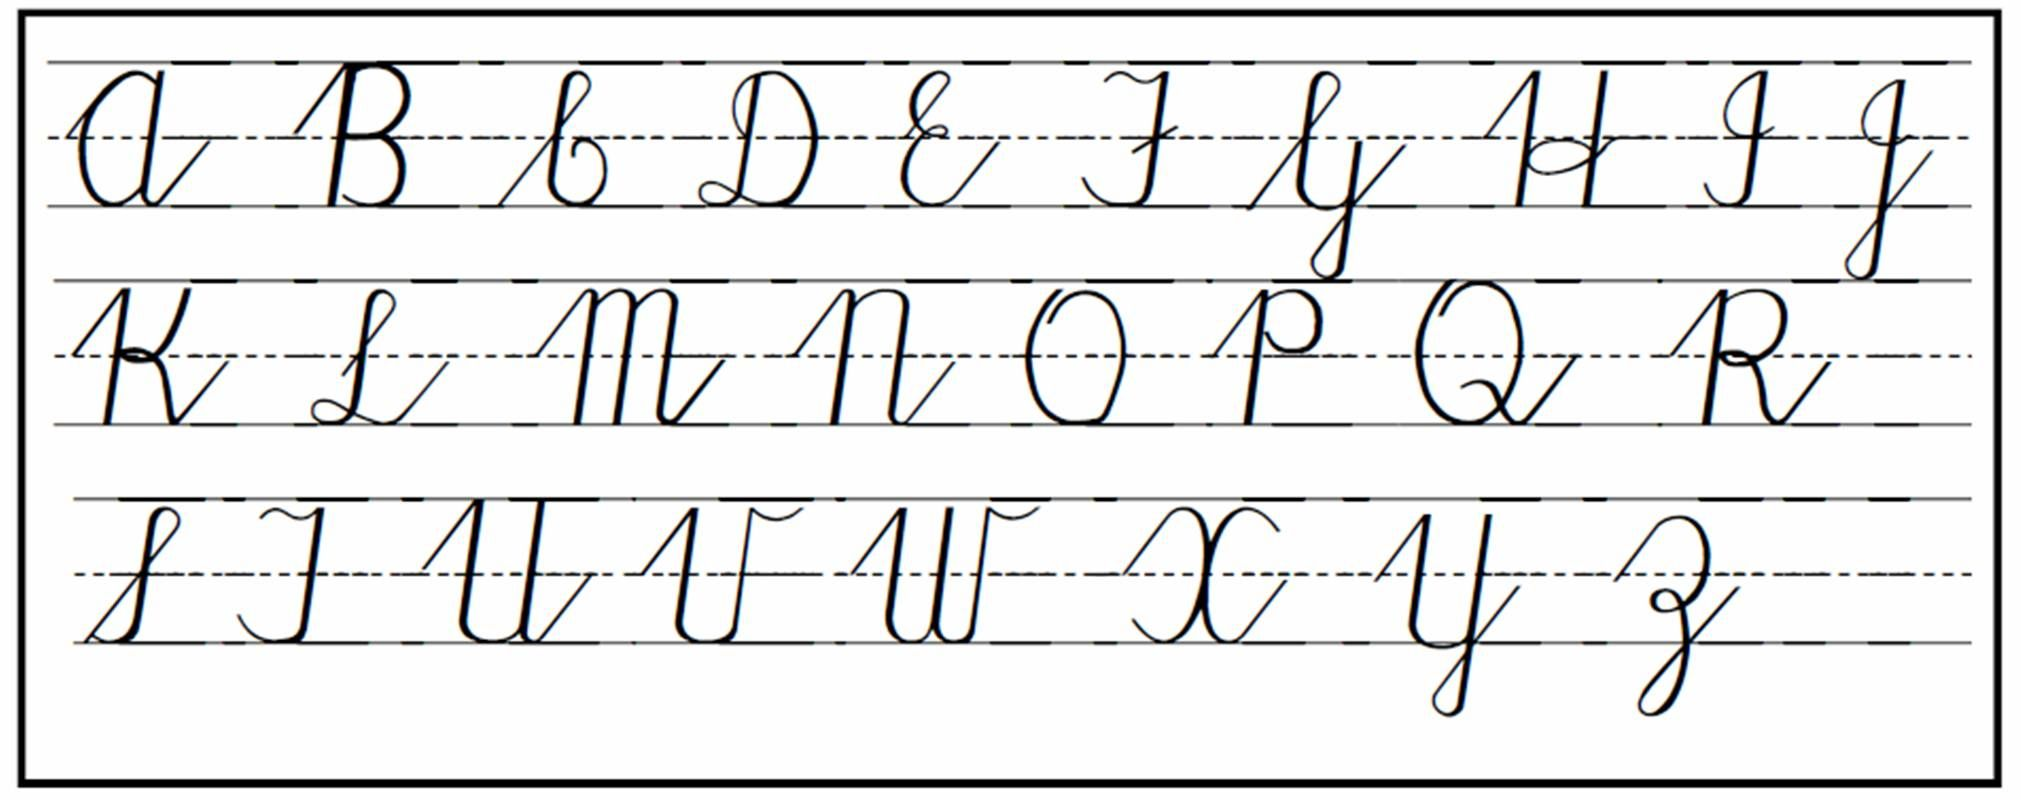 Cursive Handwriting Step By Step For Beginners Cursive Handwriting Cursive Writing Cursive Chart [ 802 x 2021 Pixel ]